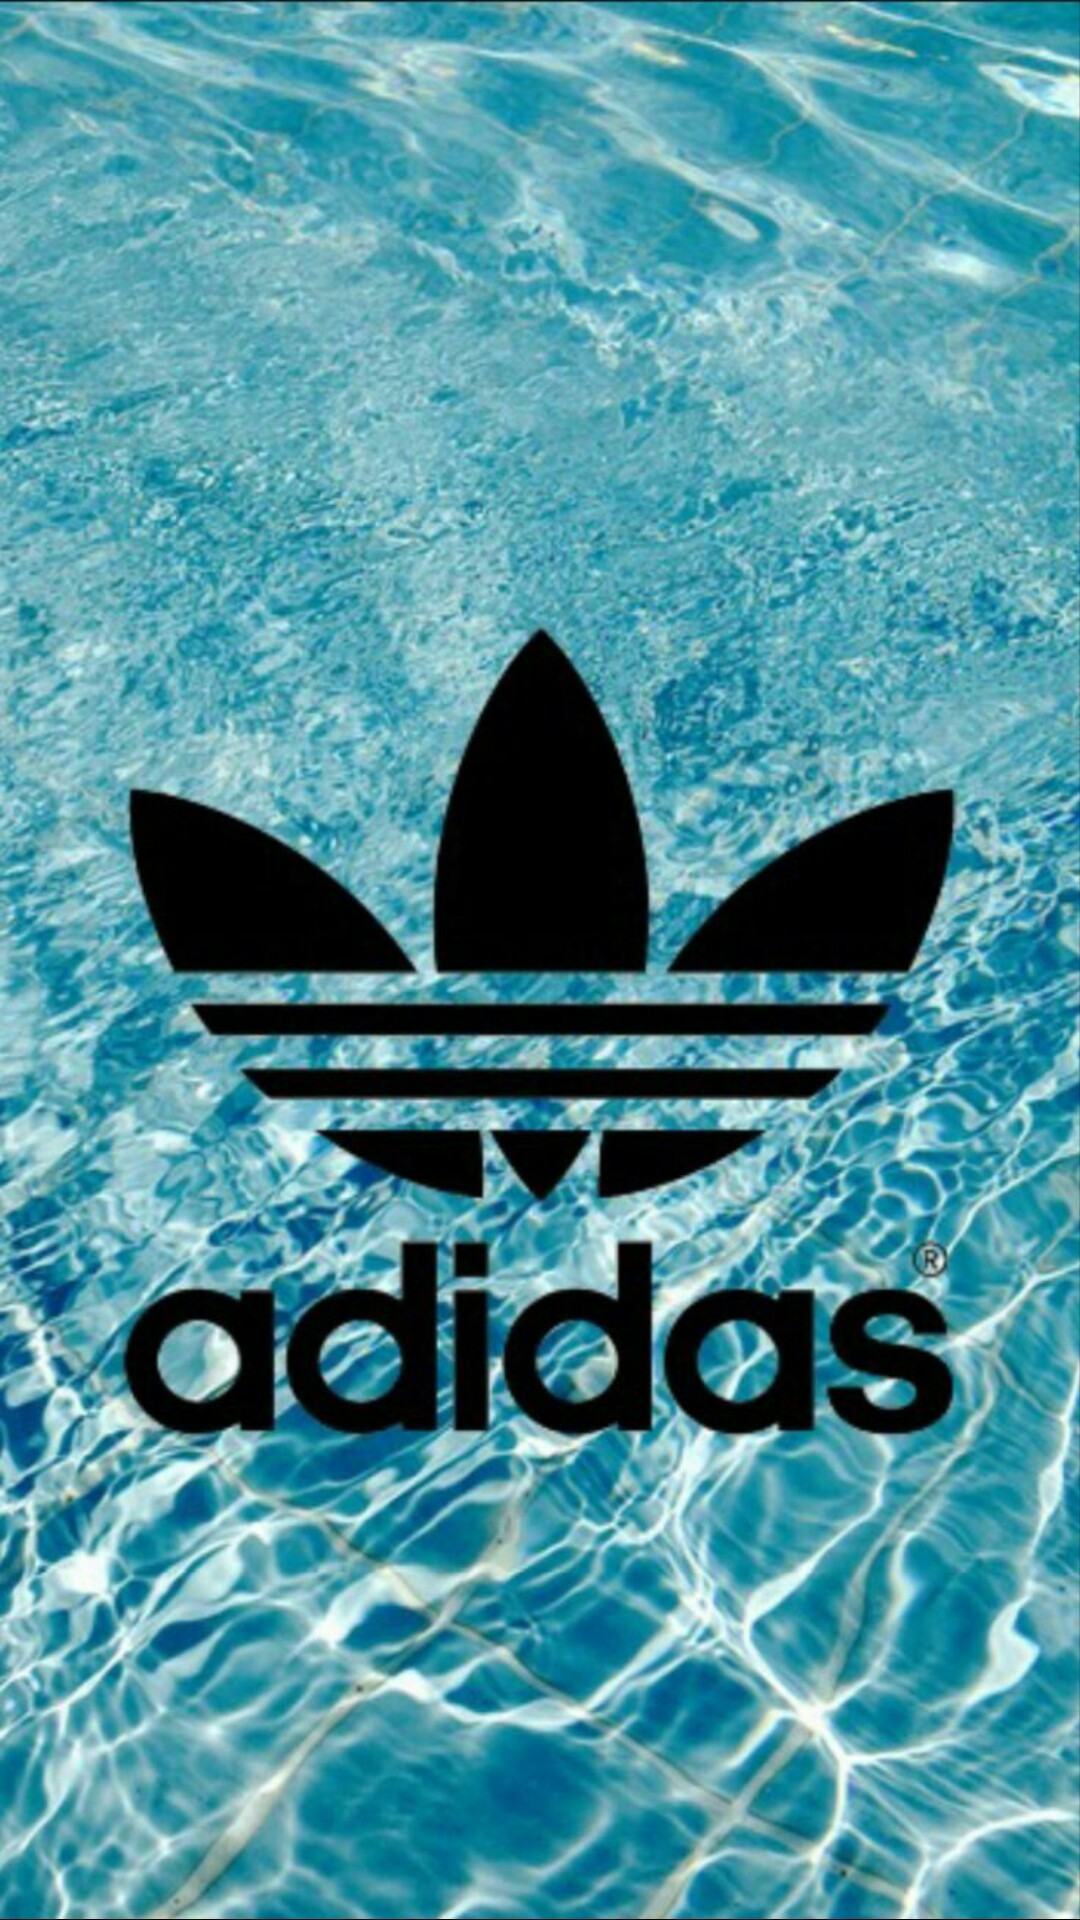 1080x1920 Wallpaper Lockscreen, Iphone Wallpapers, Adidas Sport, Phone Backgrounds,  Water, Me Ame, Design, Style, Branding